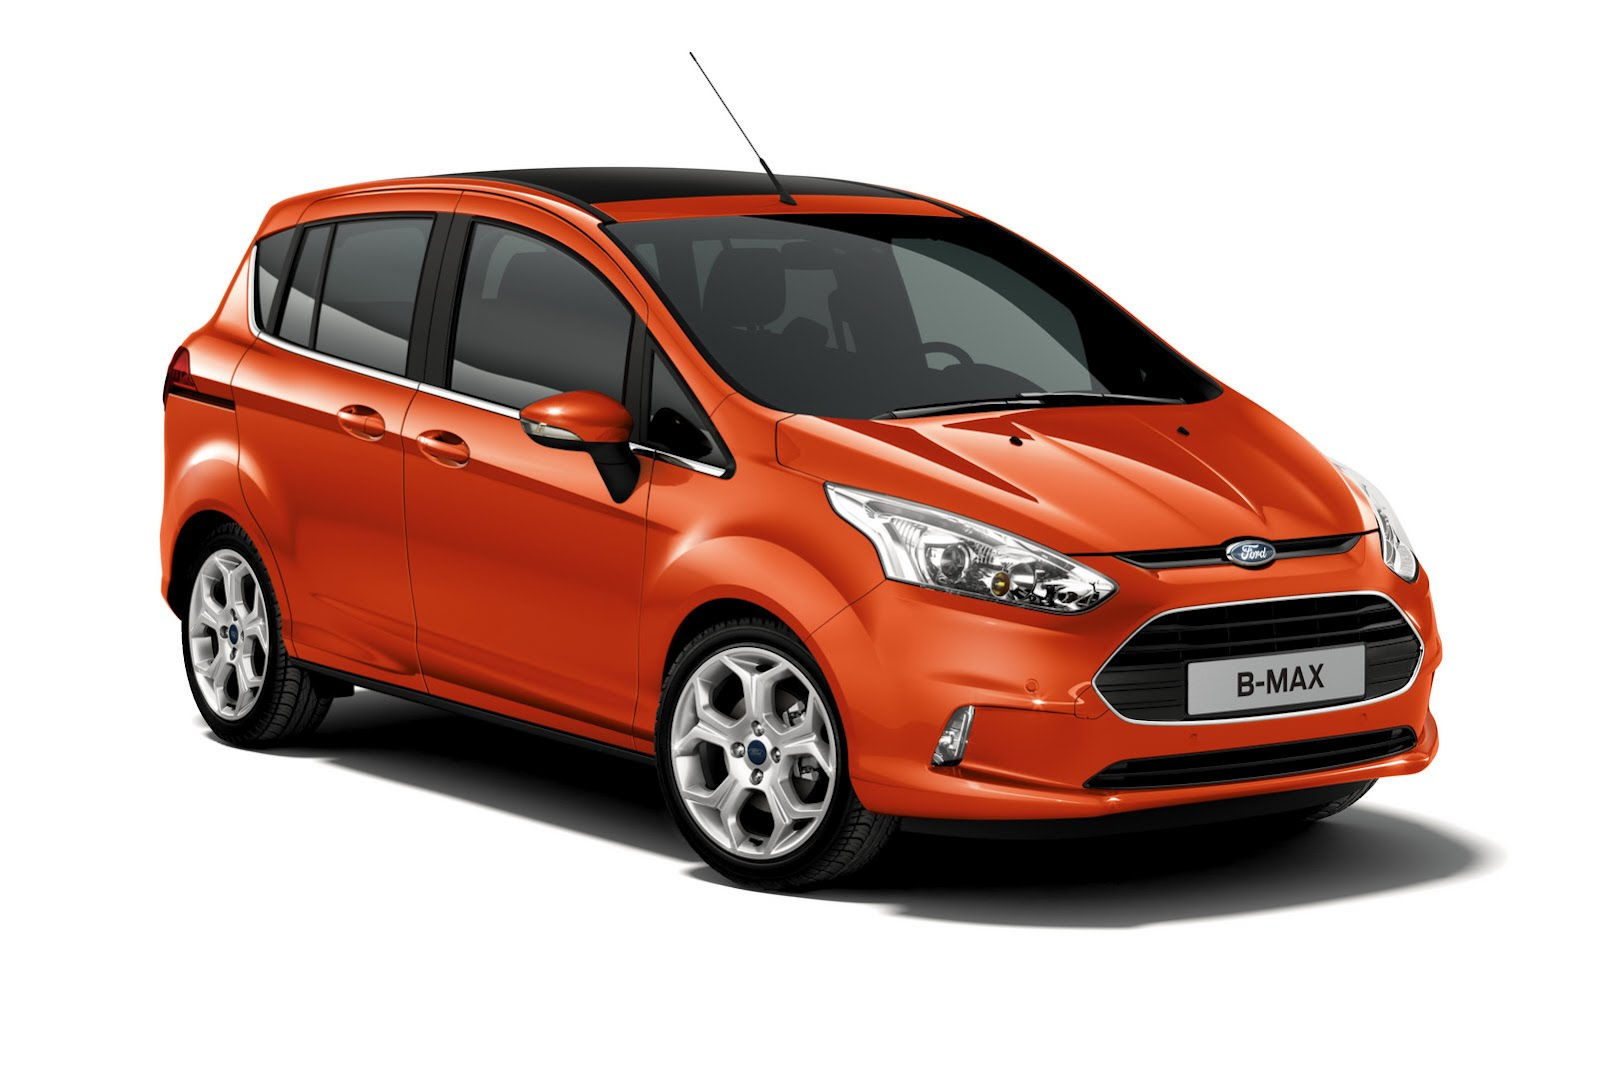 2012 Ford B MAX 2012 Ford B MAX: First Official Photo of Small MPV Released